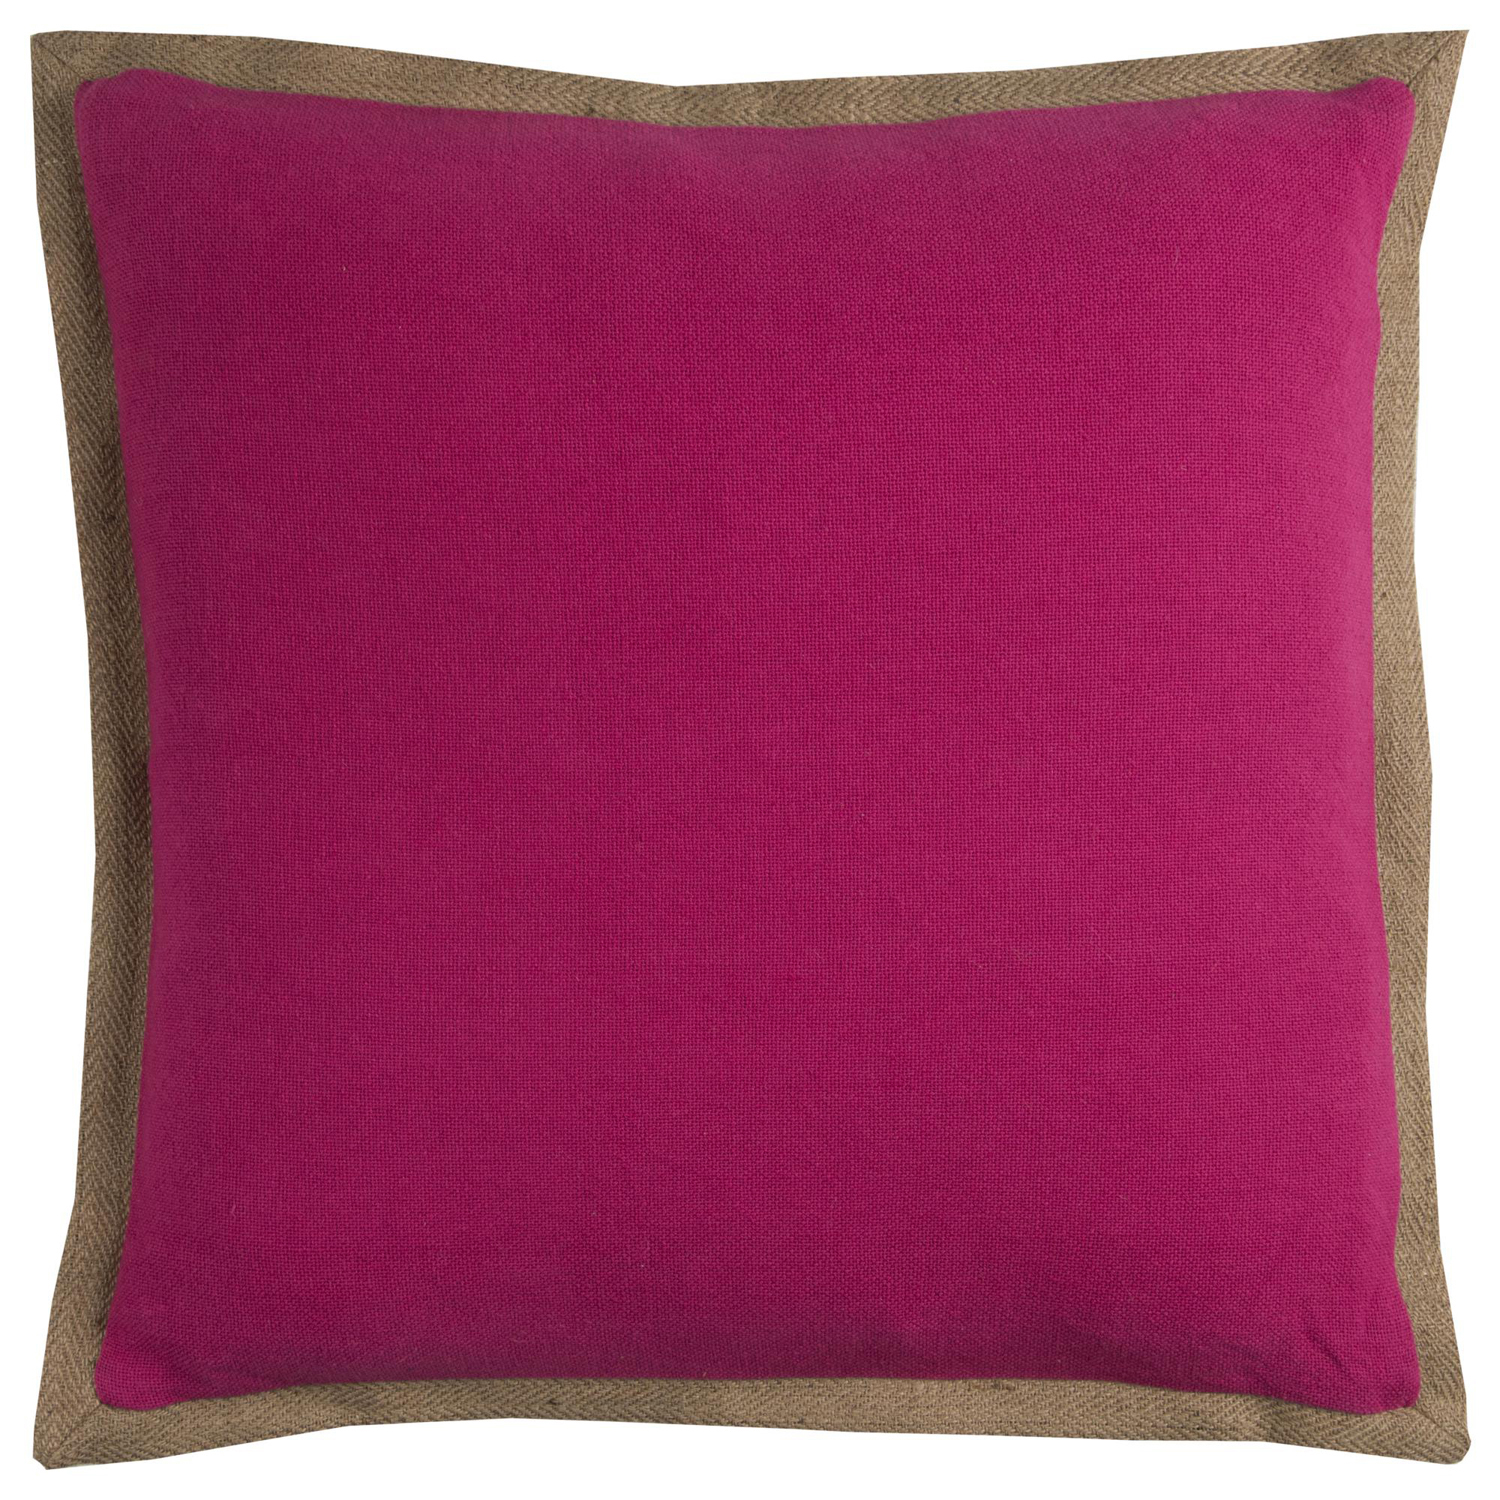 Trimmed Solid Dark Pink Pillow Cover